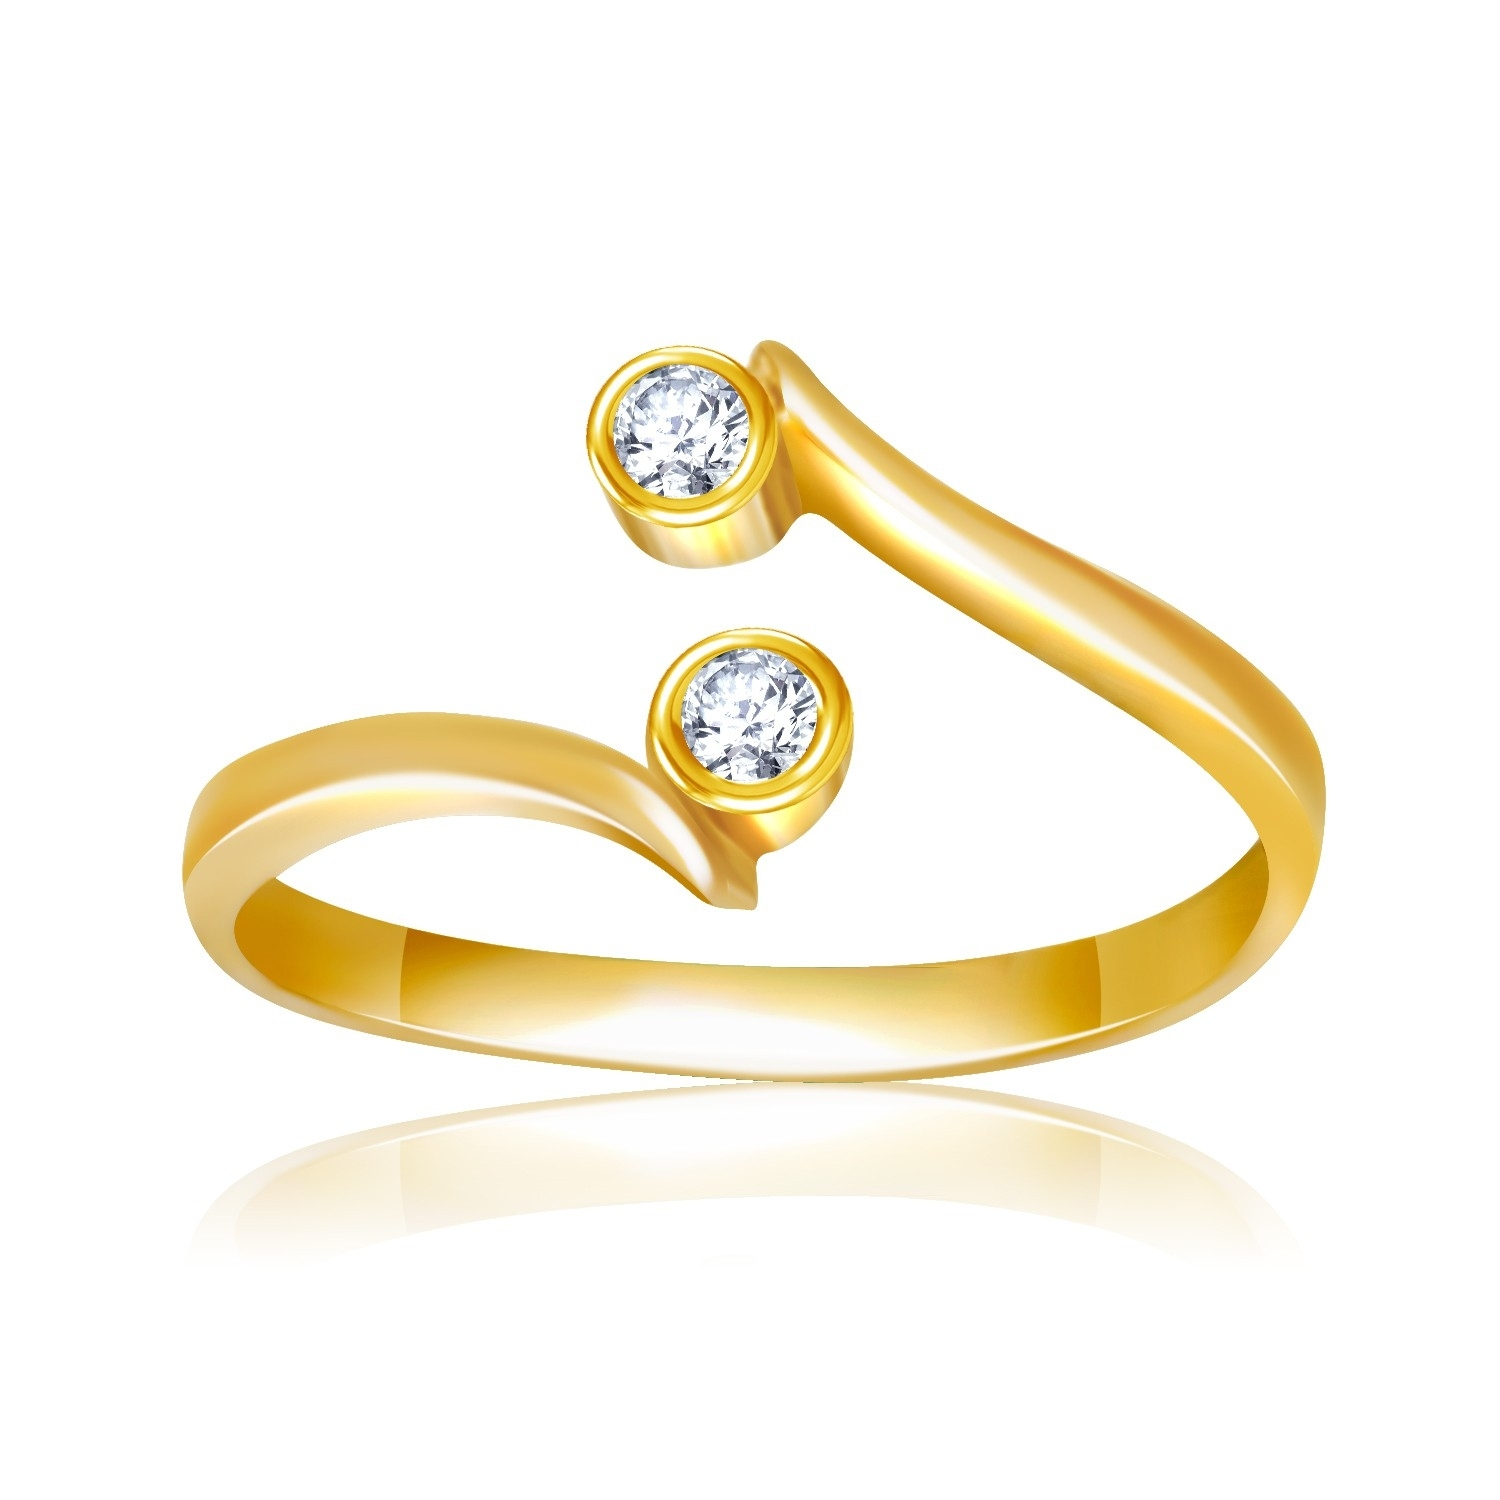 Cubic Zirconia Embellished Curved Toe Ring In 14K Yellow Gold Intended For Most Current Gold Diamond Toe Rings (Gallery 8 of 15)